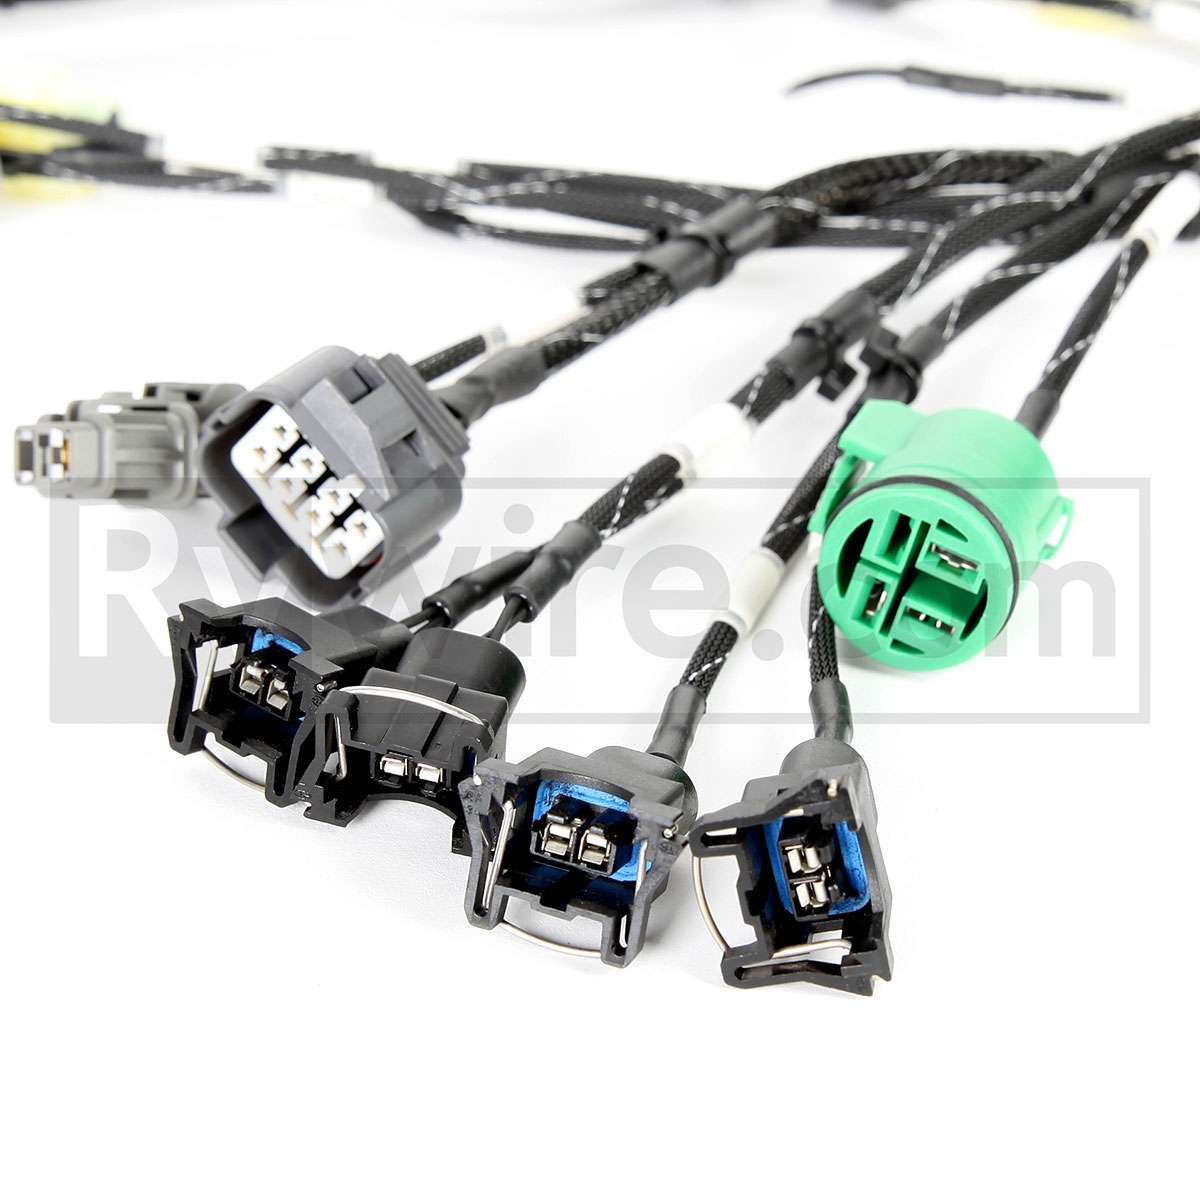 B1 Base 4?1403534211 rywire com budget d & b series tucked engine harness 99-00 civic si wiring harness at creativeand.co